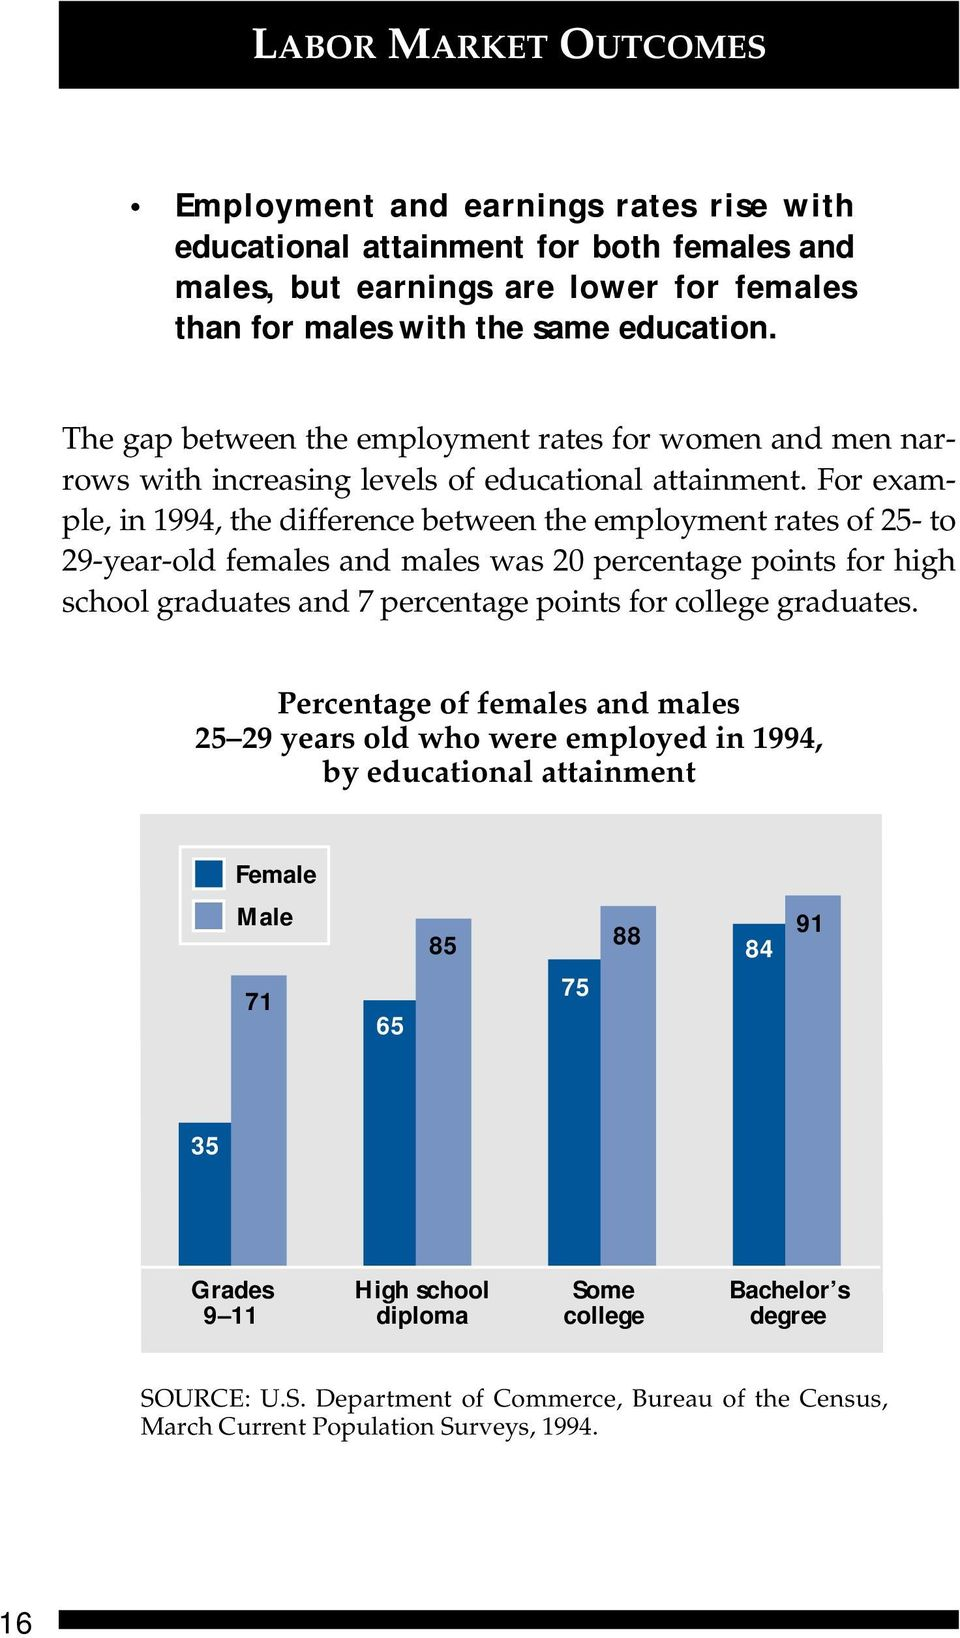 For example, in 1994, the difference between the employment rates of 25- to 29-year-old females and males was 20 percentage points for high school graduates and 7 percentage points for college